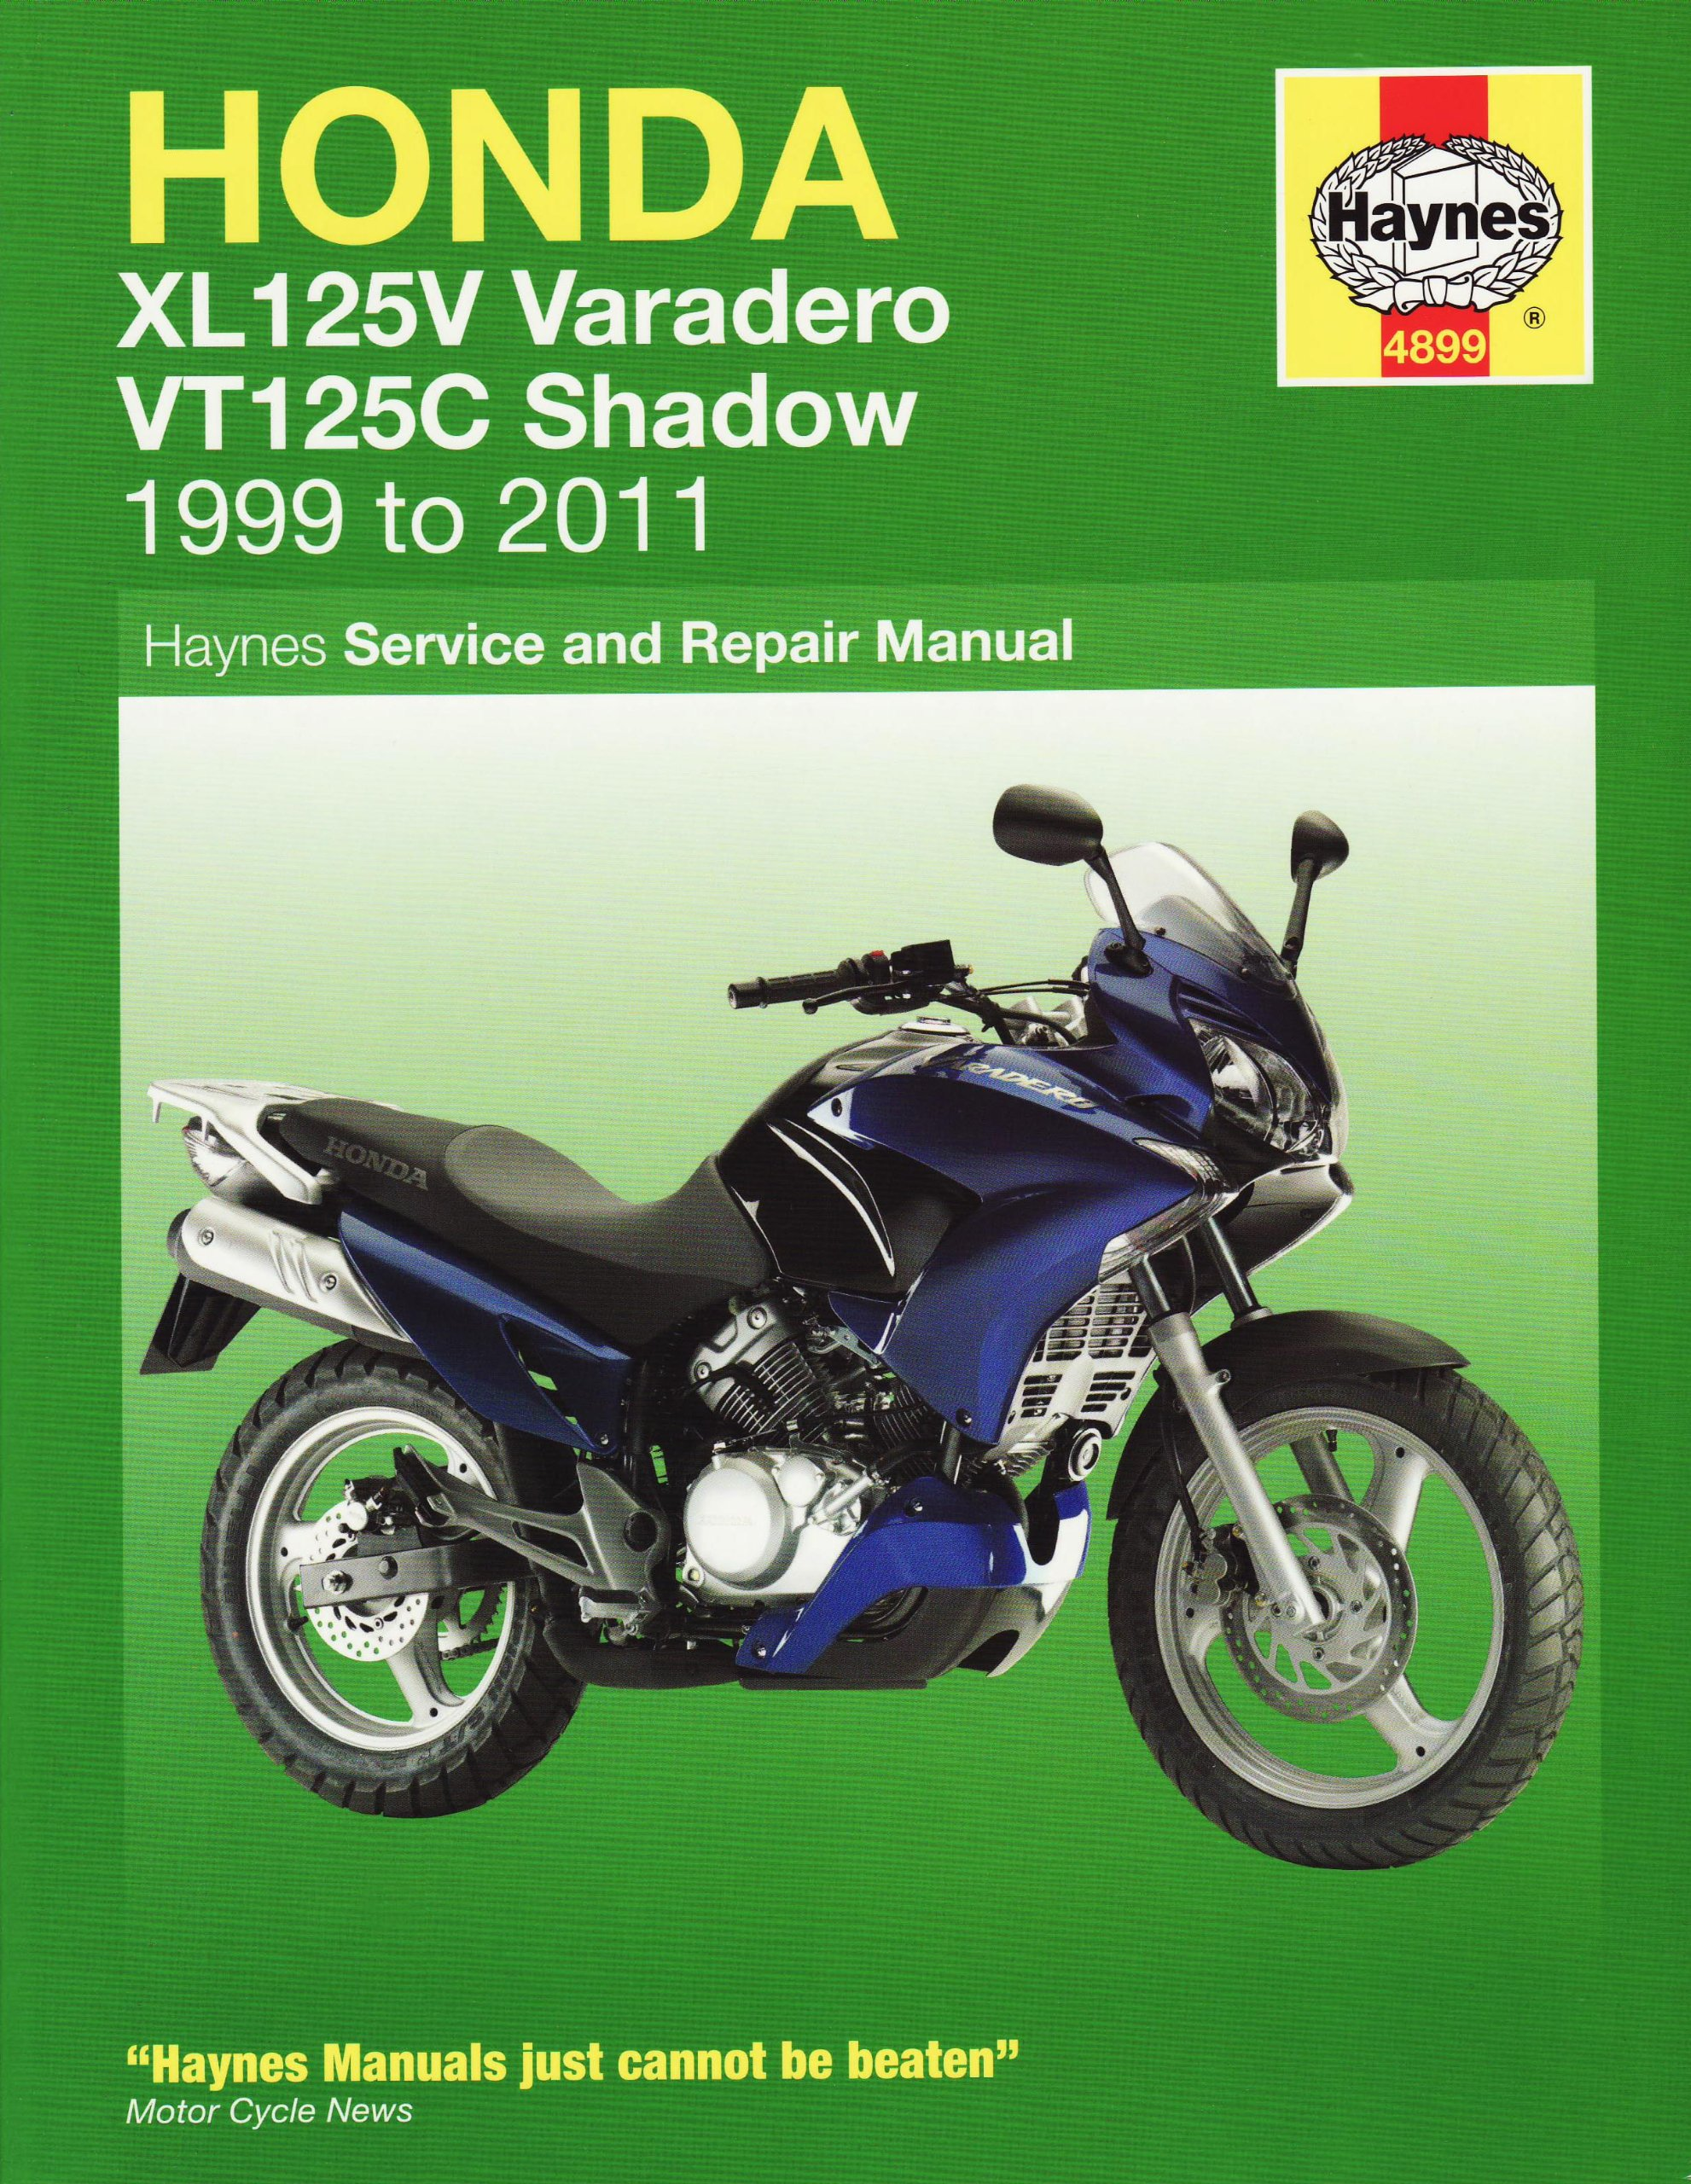 Honda XL125V & VT125C 1999 - 2011 (Haynes Motorcycle Manuals):  Amazon.co.uk: Anon: 9781844258994: Books